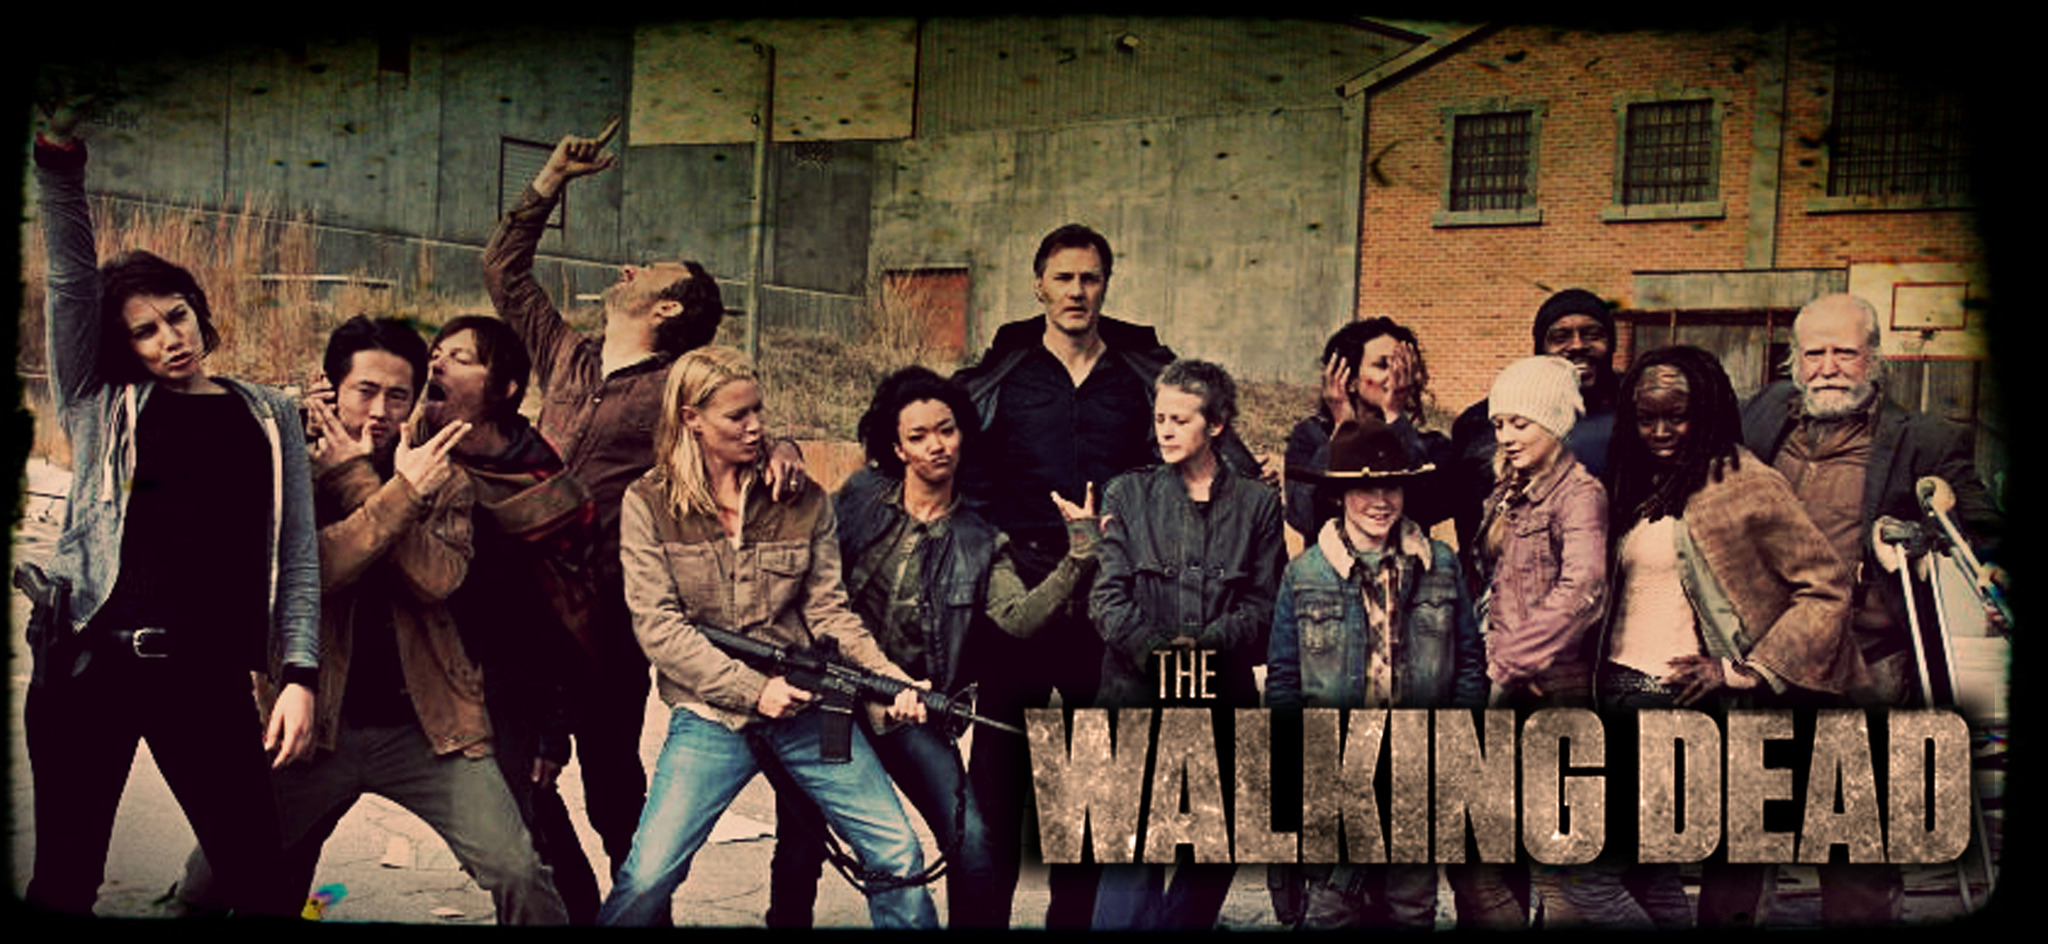 Best Walking Dead Cuarta Temporada Gallery - Casas: Ideas, imágenes ...